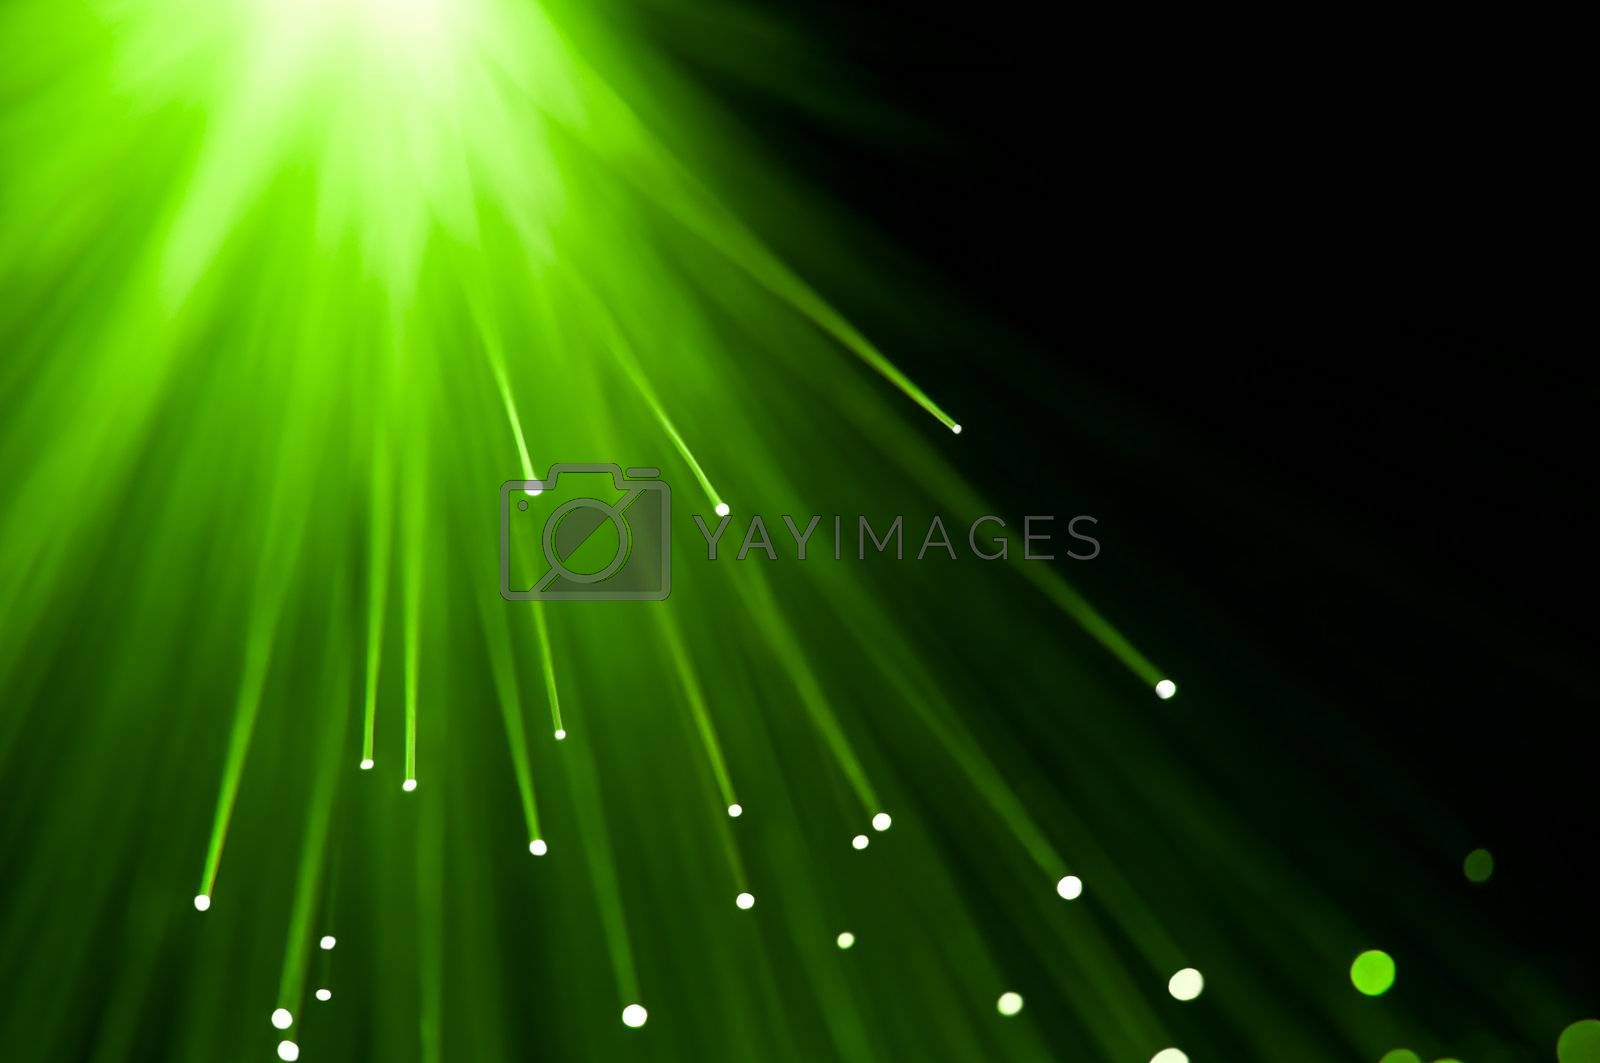 Abstract green fibre optic lights against a black background.